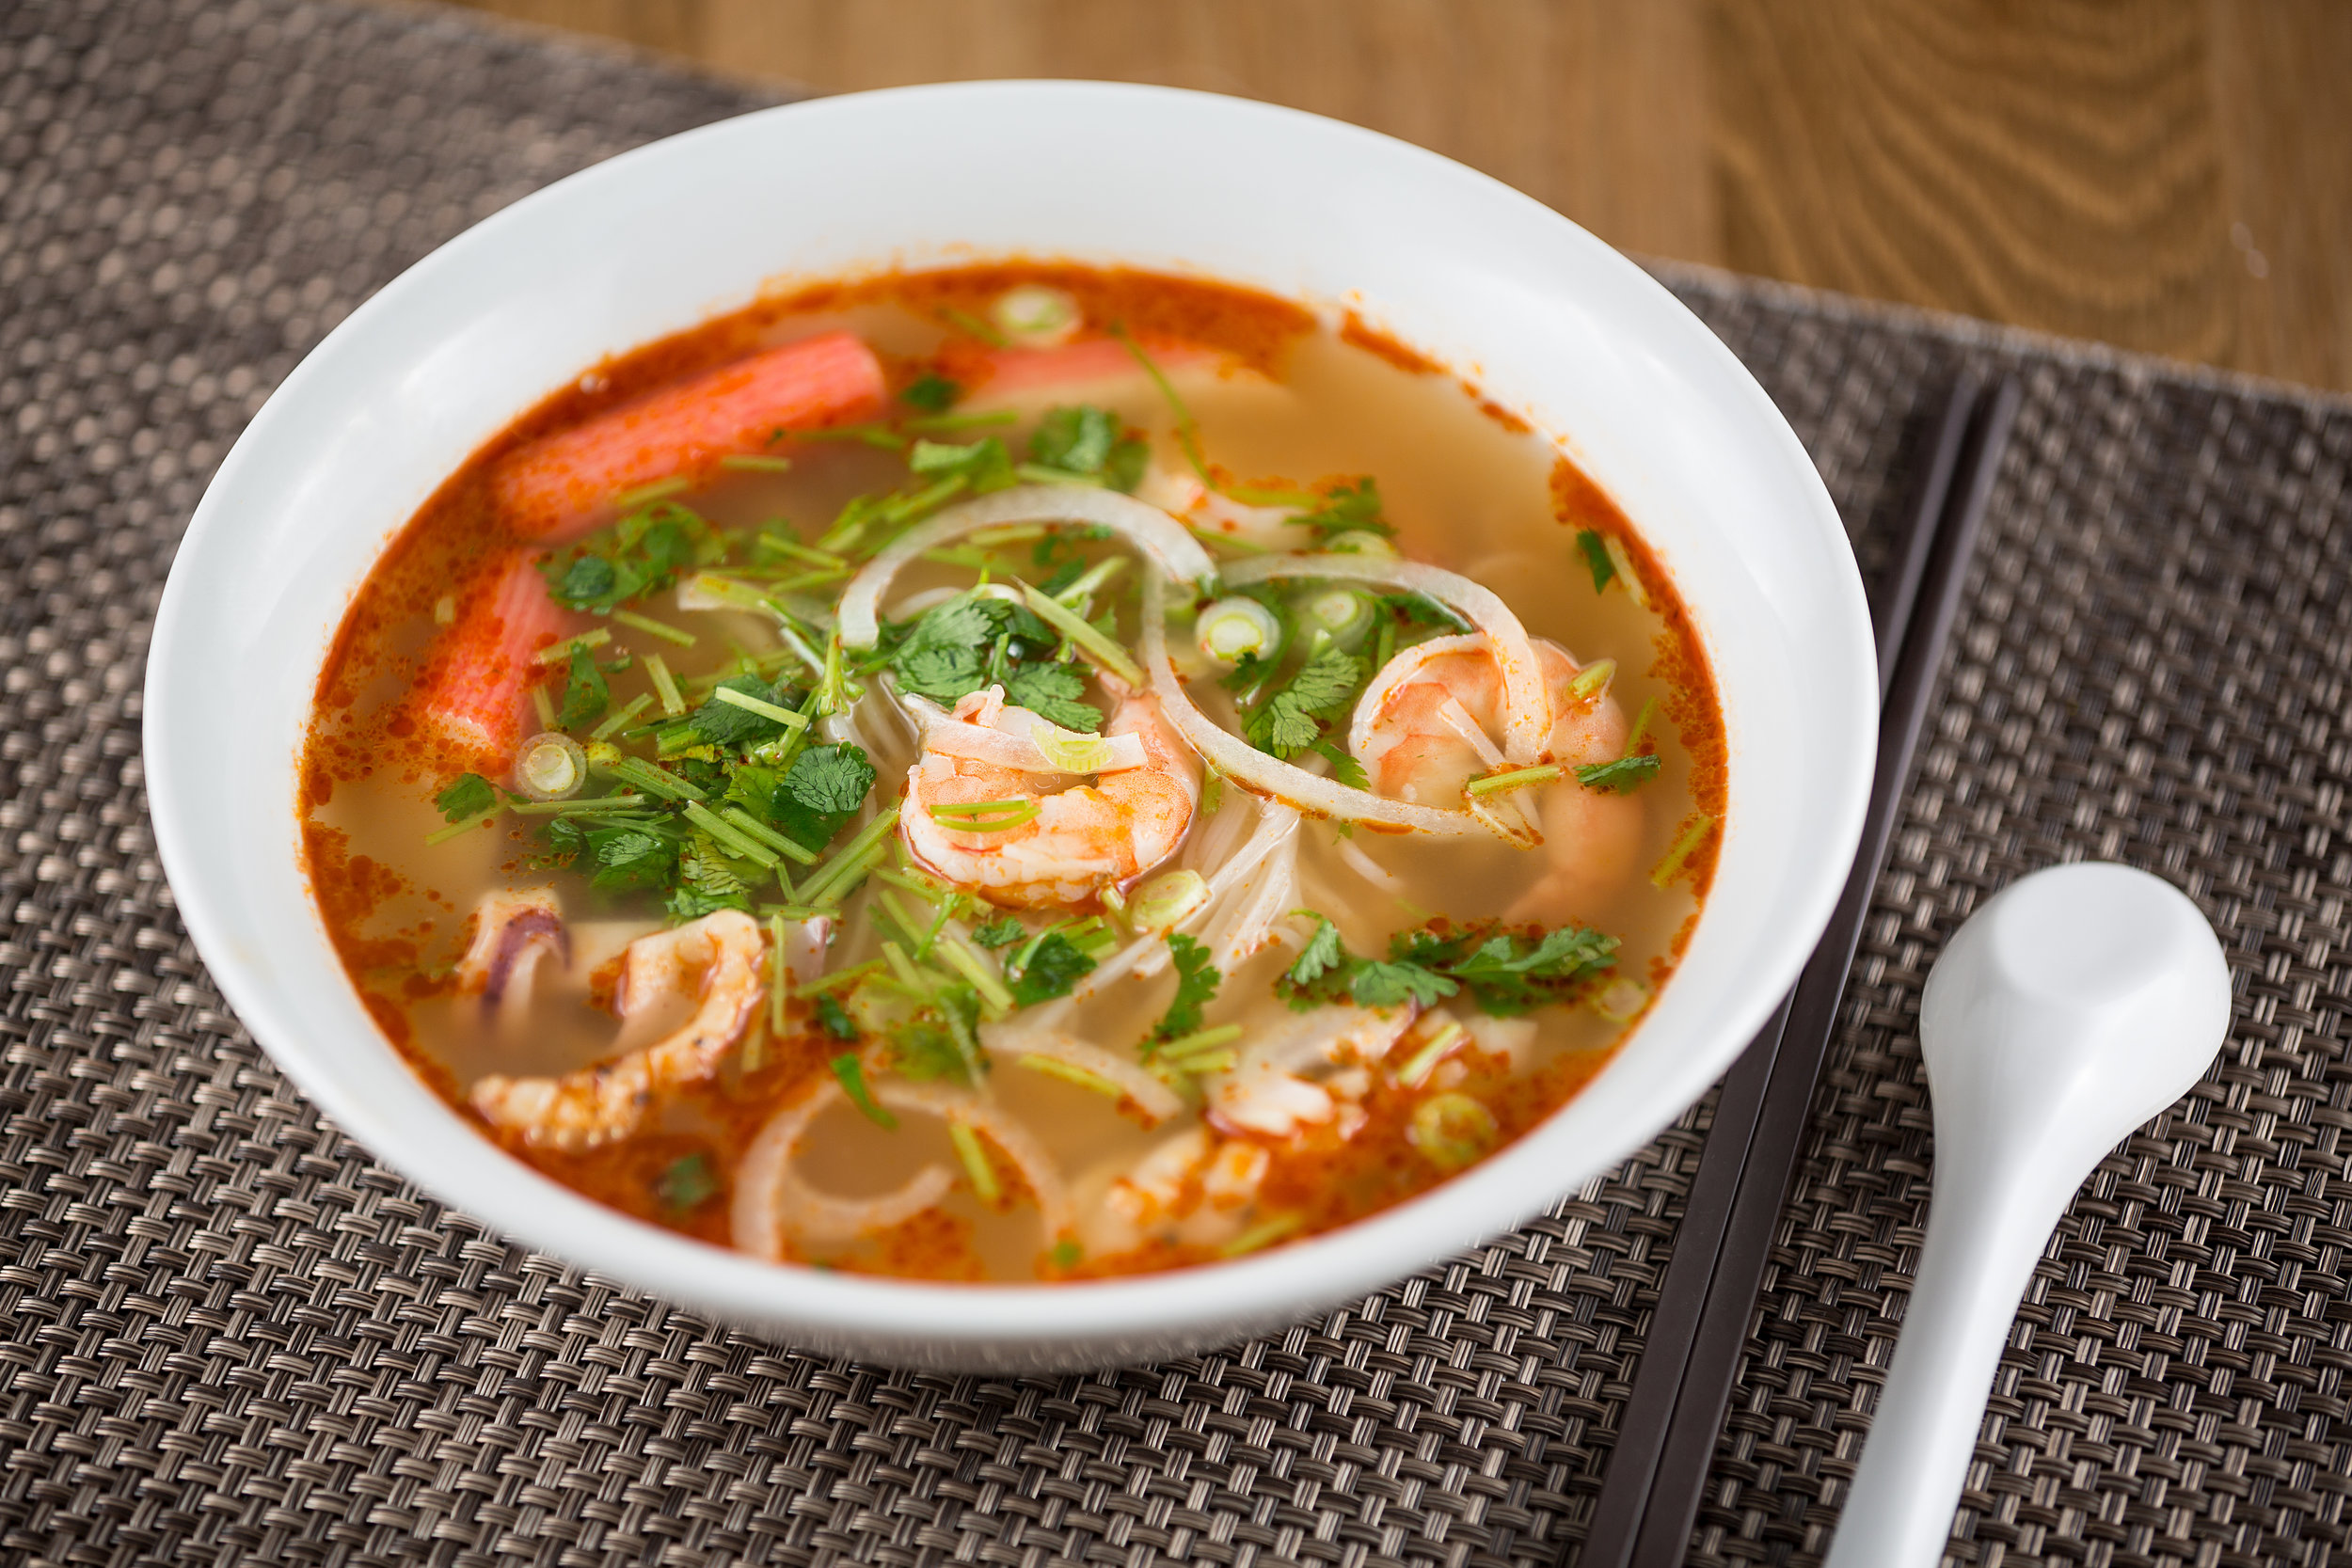 Sour and Spicy Seafood Noodle Soup